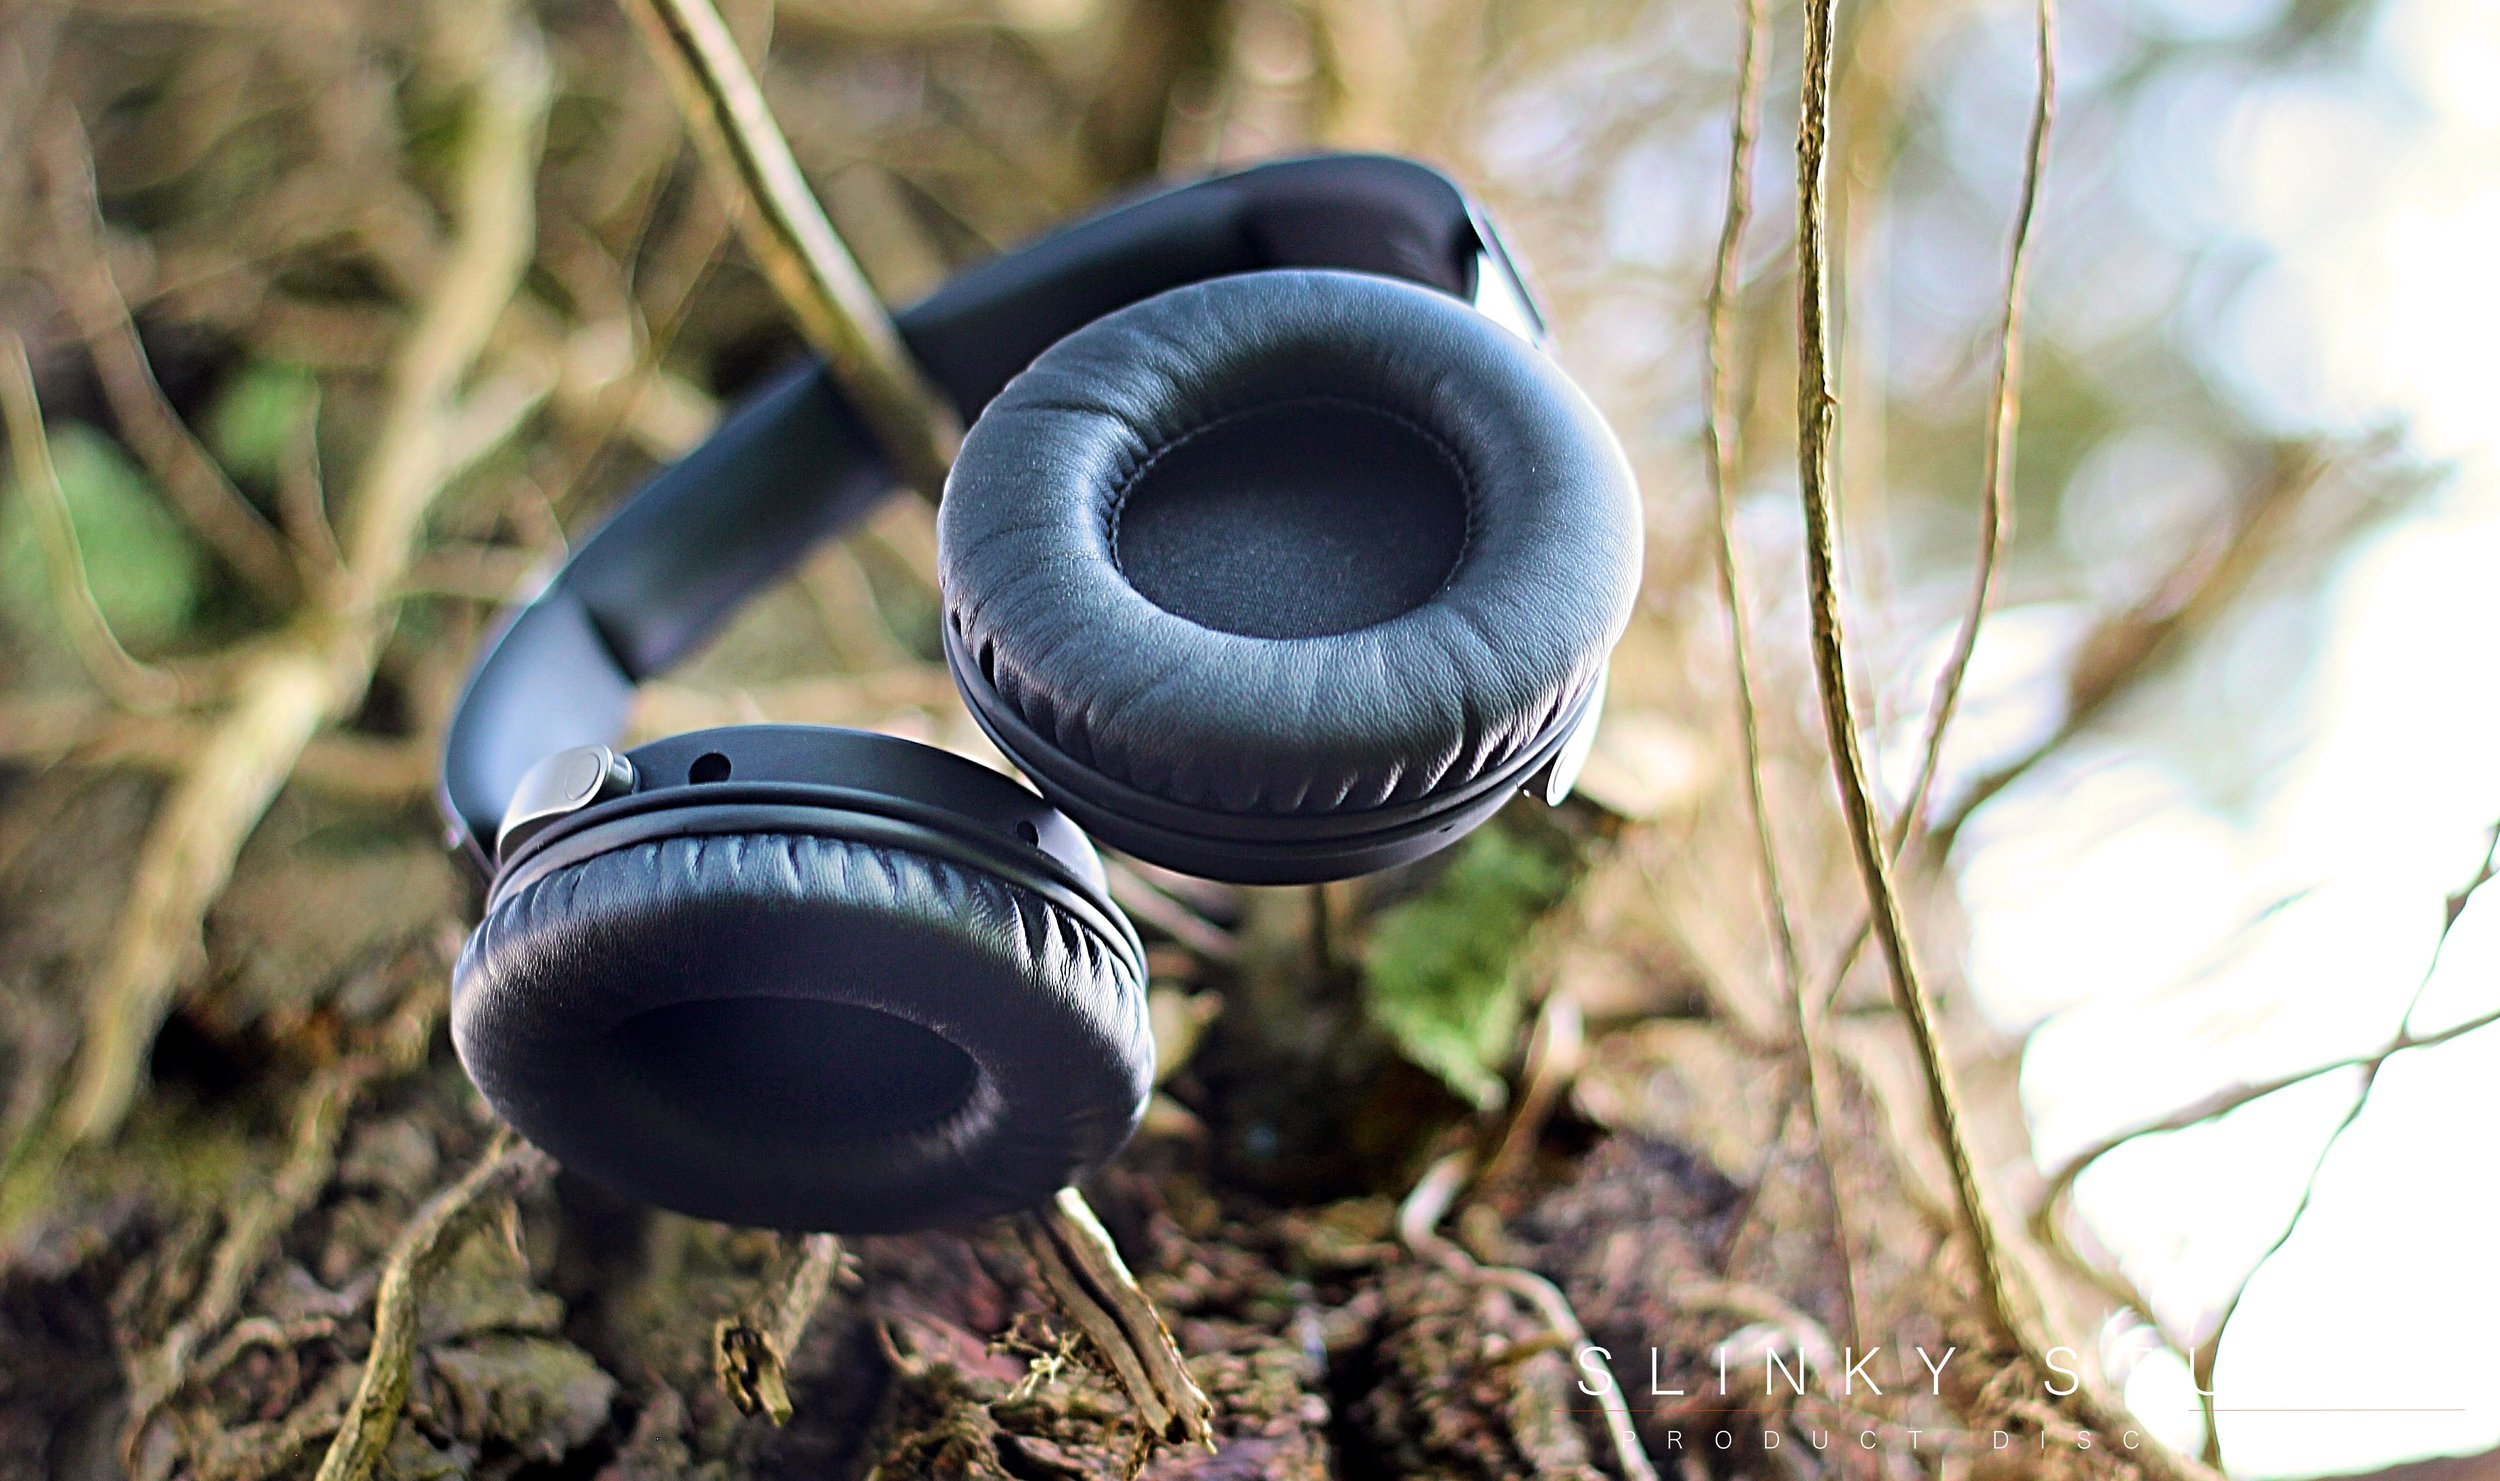 SoundMagic Vento P55 Headphones Ear Pads Hanging On Tree View.jpg